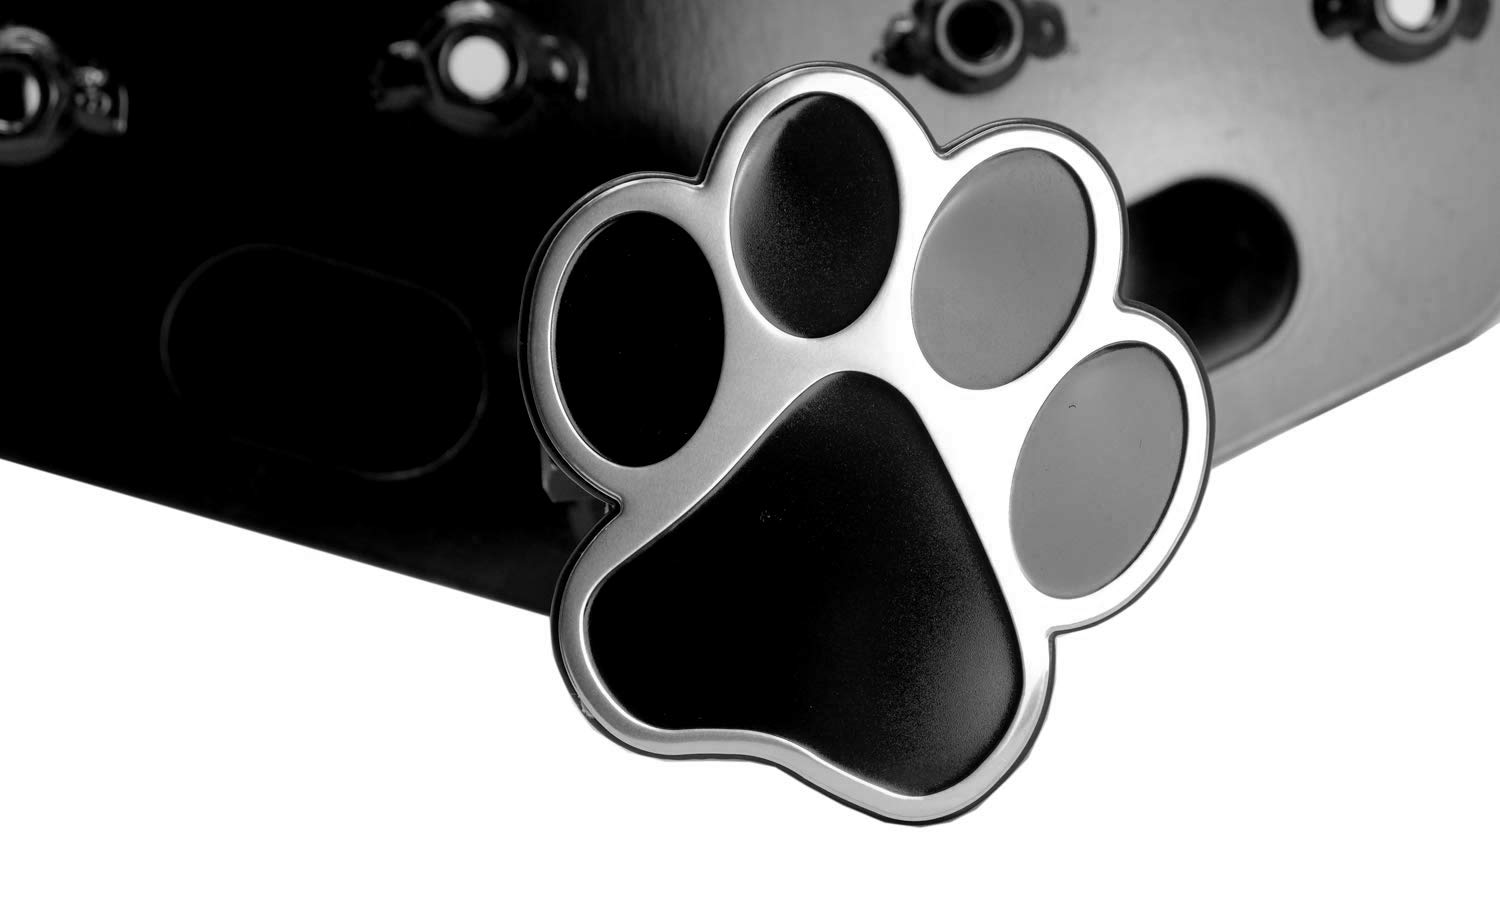 LFPartS Dog Animal Paw Foot Emblem Metal Trailer Hitch Cover Fit 2 Receivers, Chrome /& Black